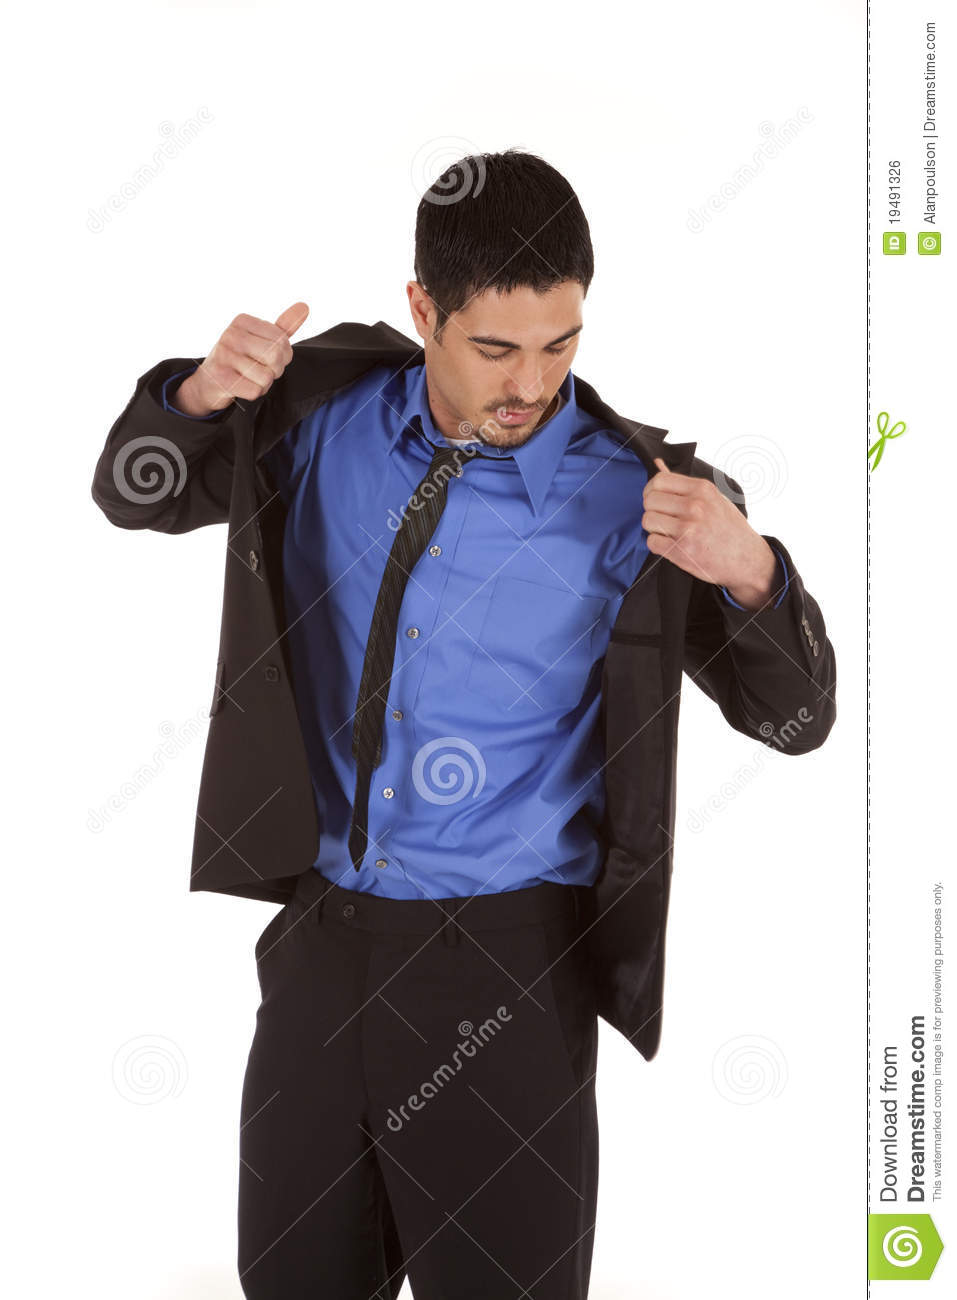 business-man-put-jacket-19491326.jpg